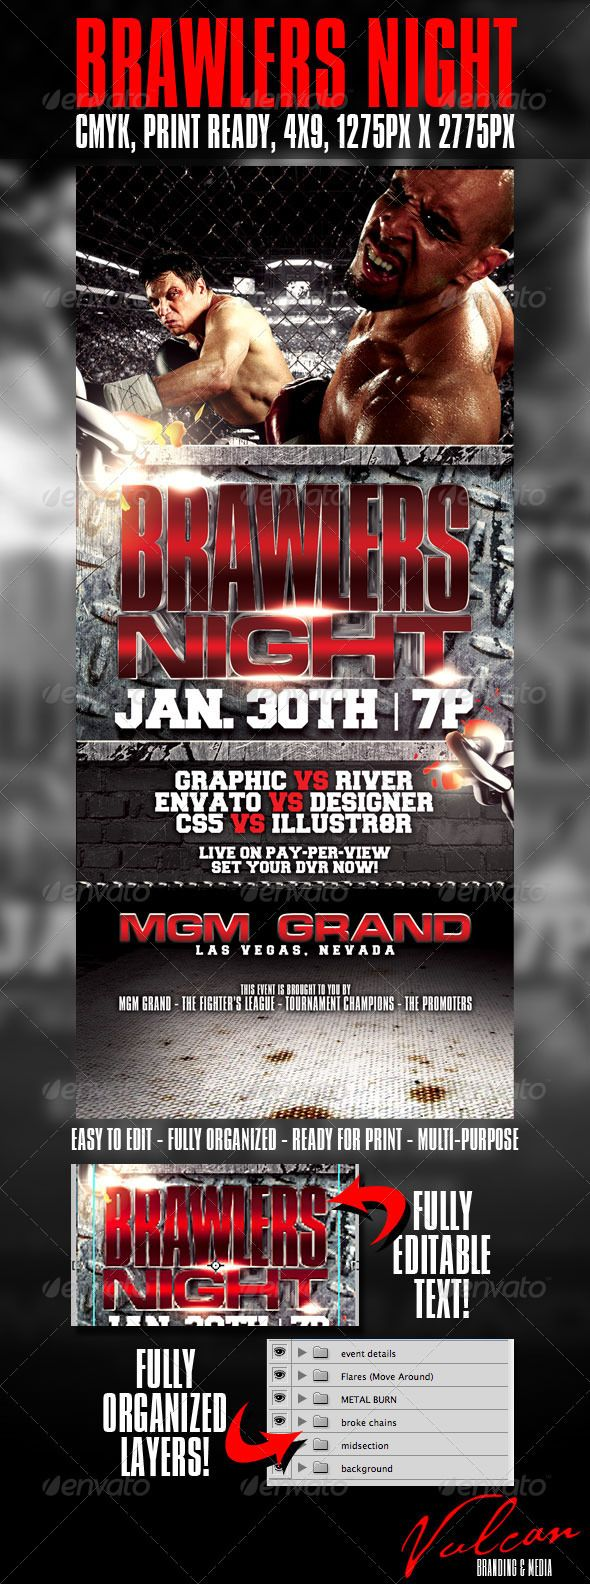 MMA Fight Night Boxing Fight Flyer UFC – Ufc Flyer Template